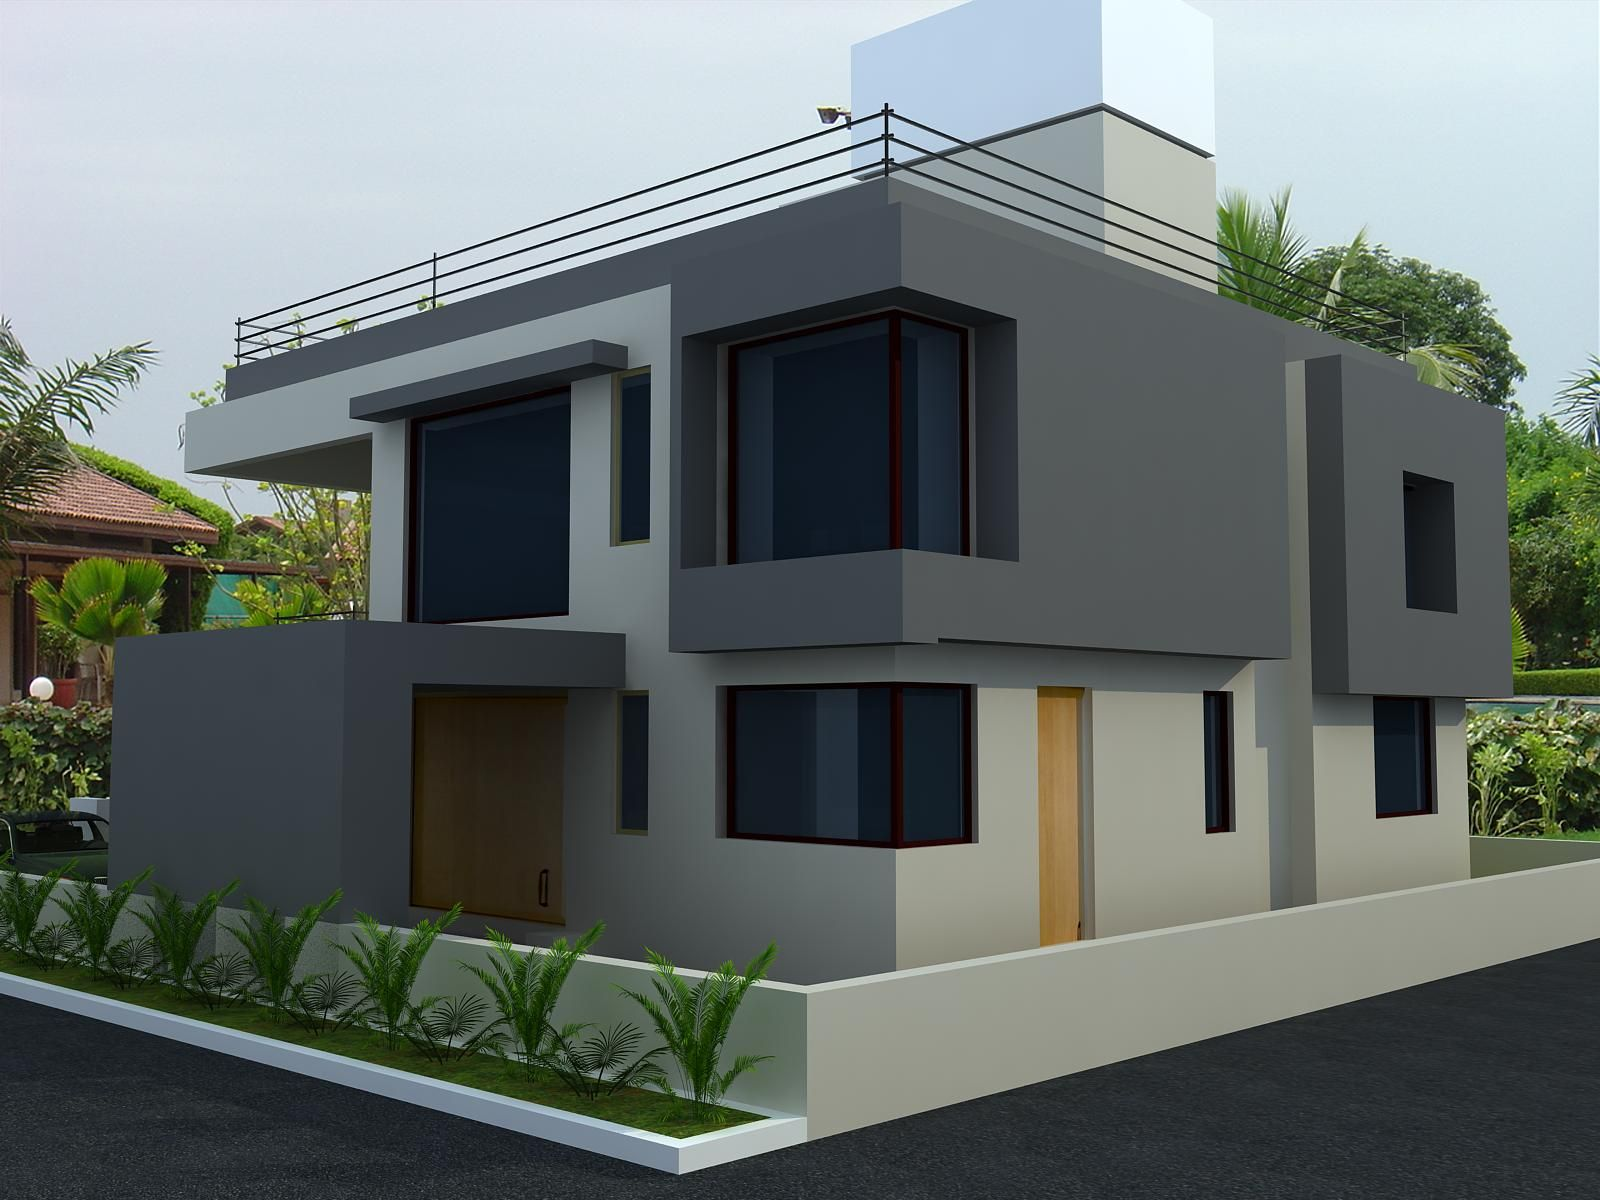 Architectural 3d model architectural 3d rendering for Home cad design